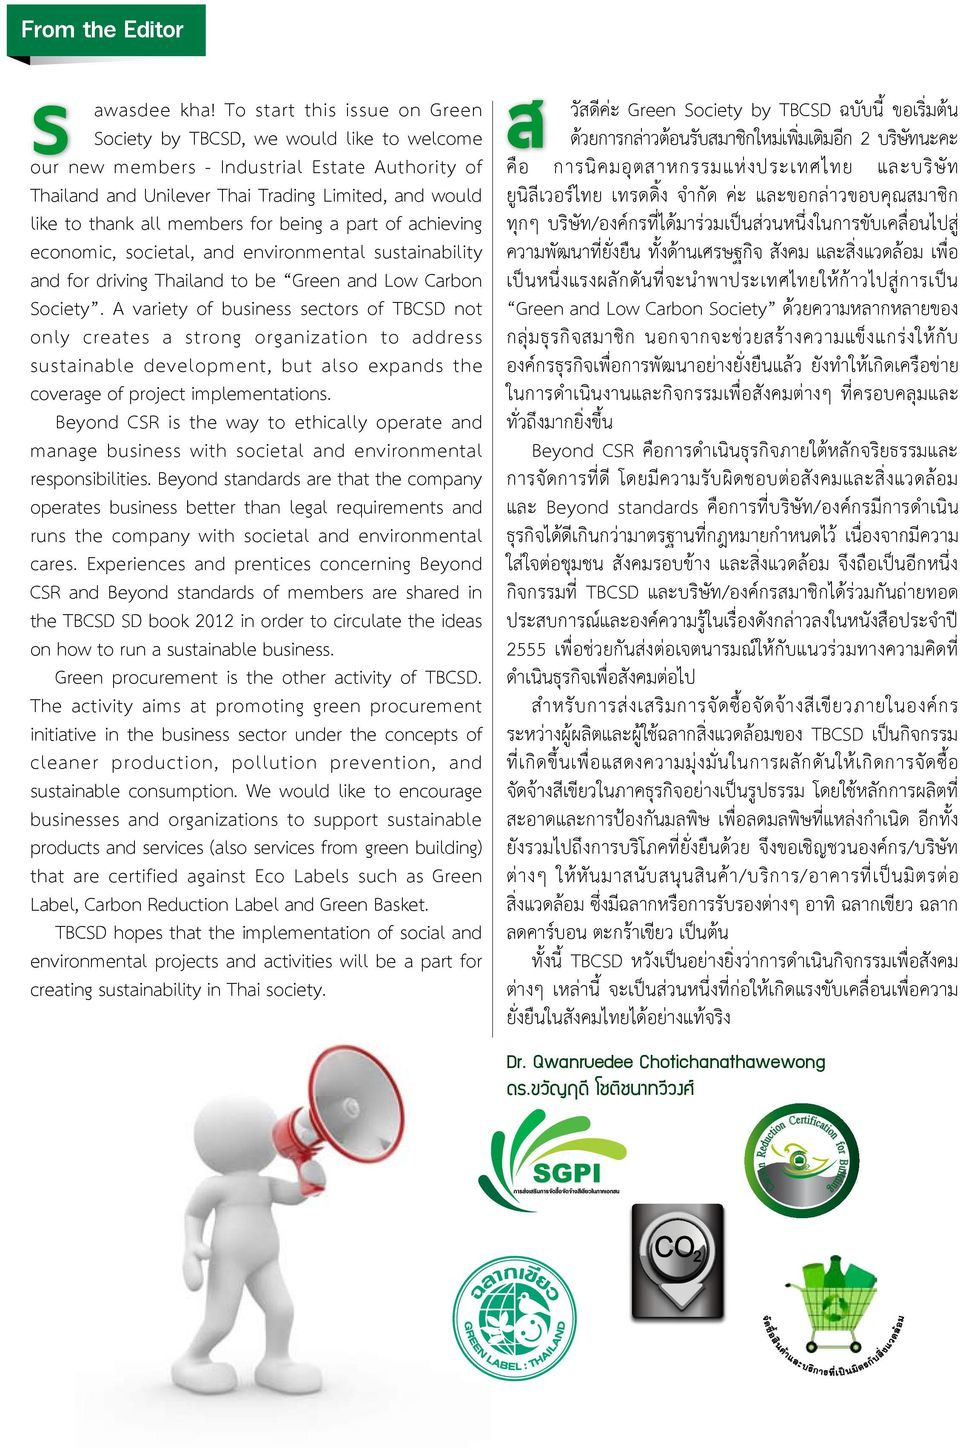 members for being a part of achieving economic, societal, and environmental sustainability and for driving Thailand to be Green and Low Carbon Society.